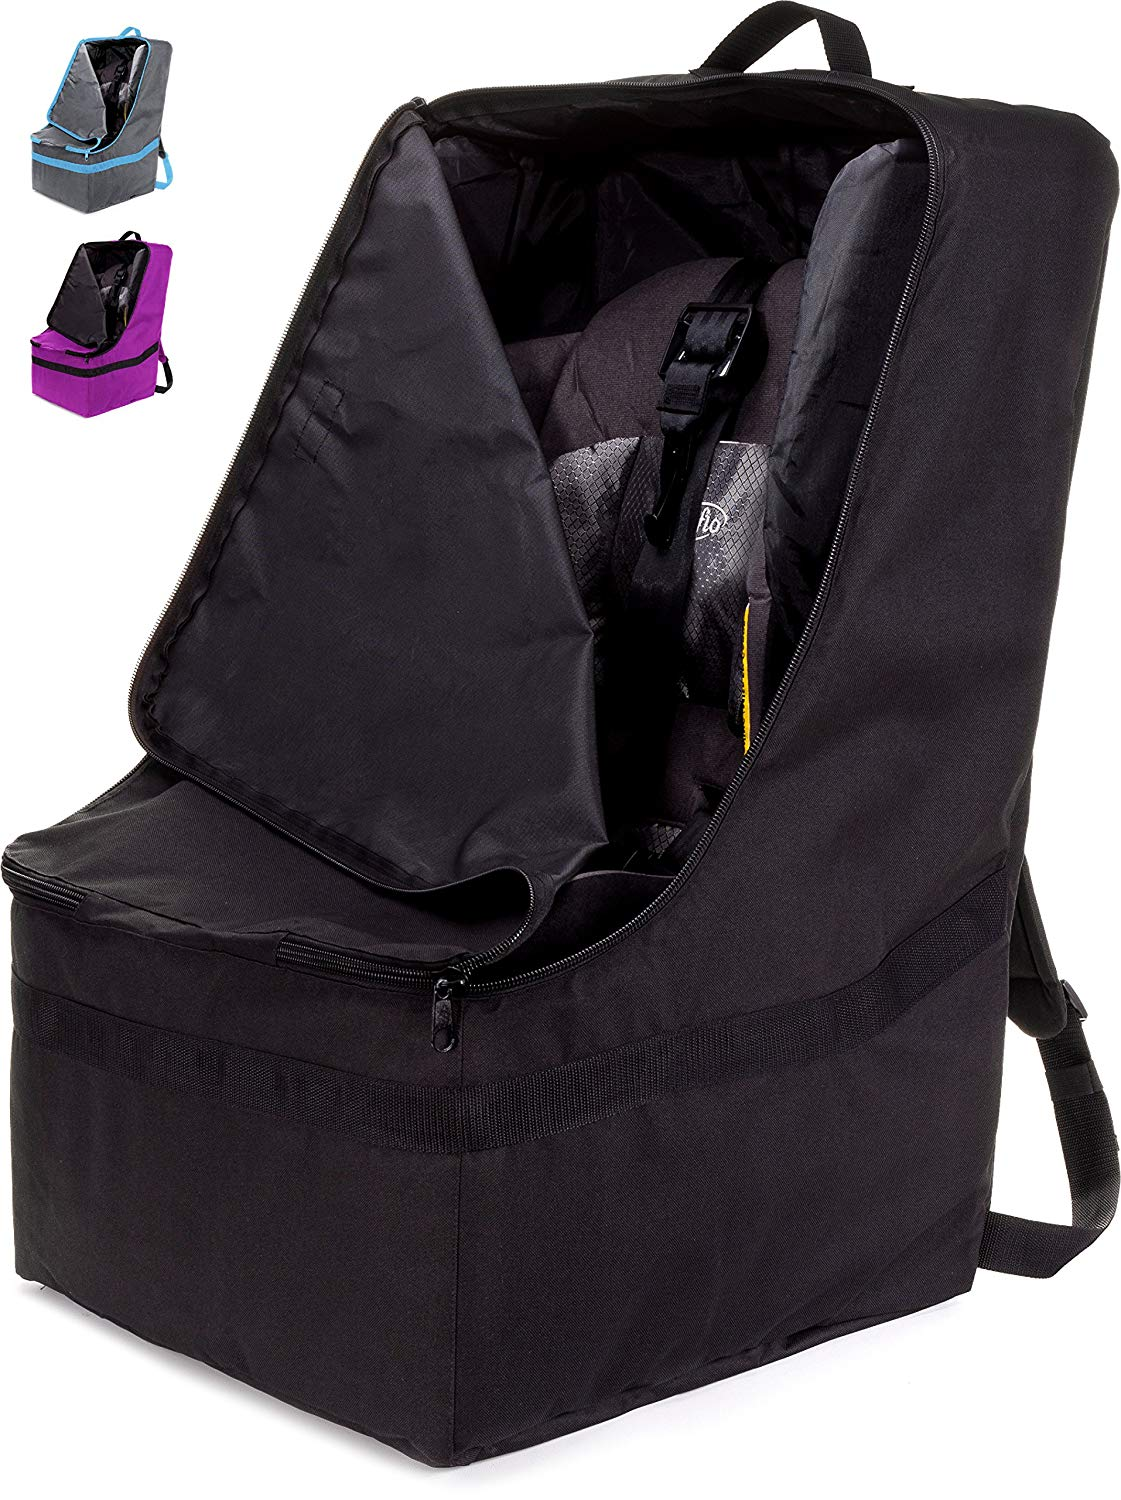 ZOHZO Car Seat Travel Bag, Black with Black Trim